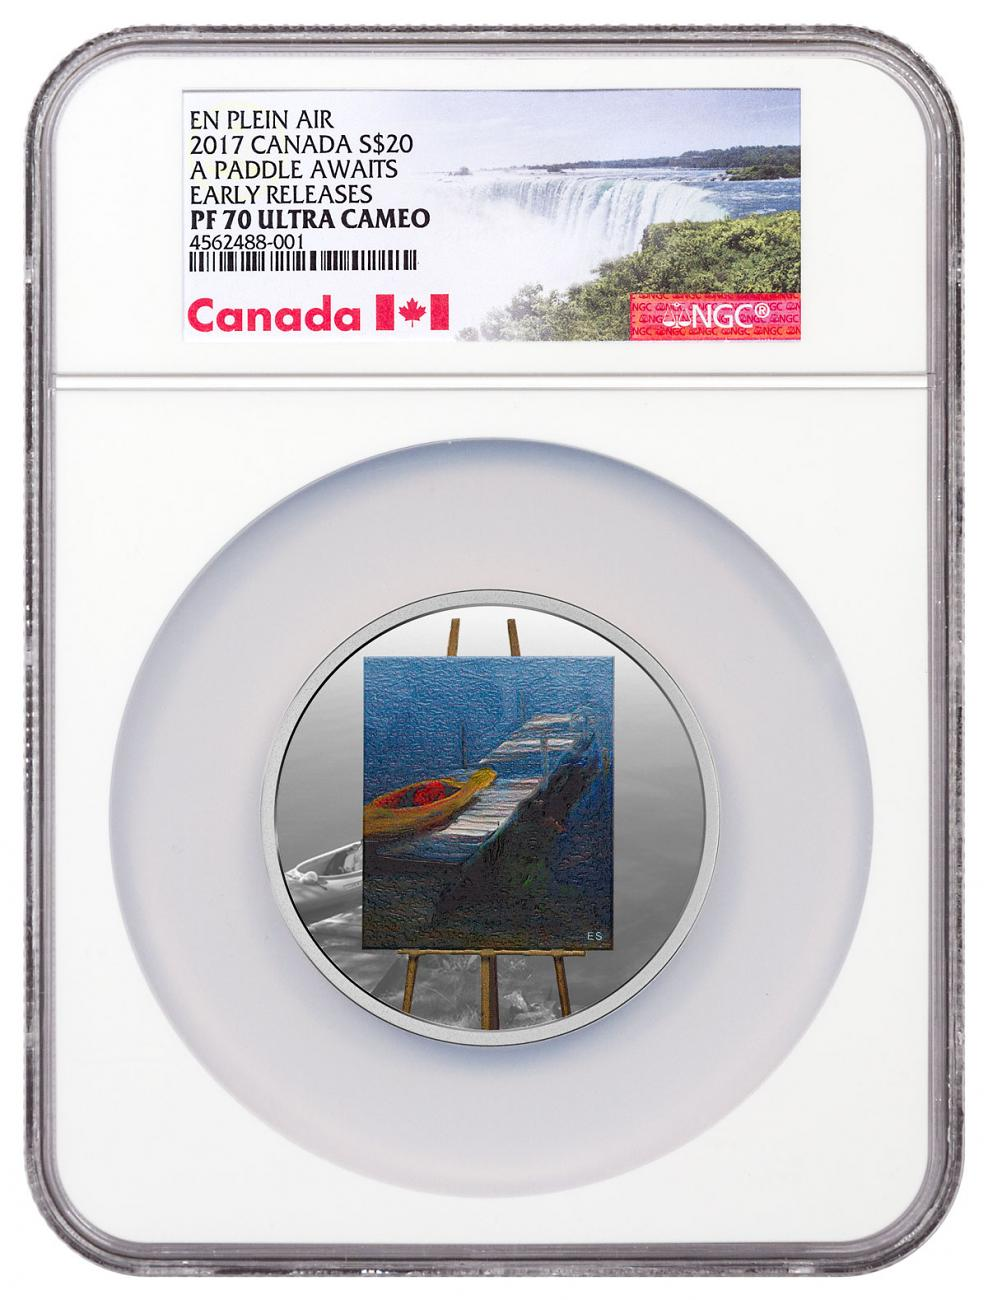 2017 Canada En Plein Air - A Paddle Awaits 1 oz Silver Colorized Proof $20 Coin NGC PF70 UC ER Exclusive Canada Label